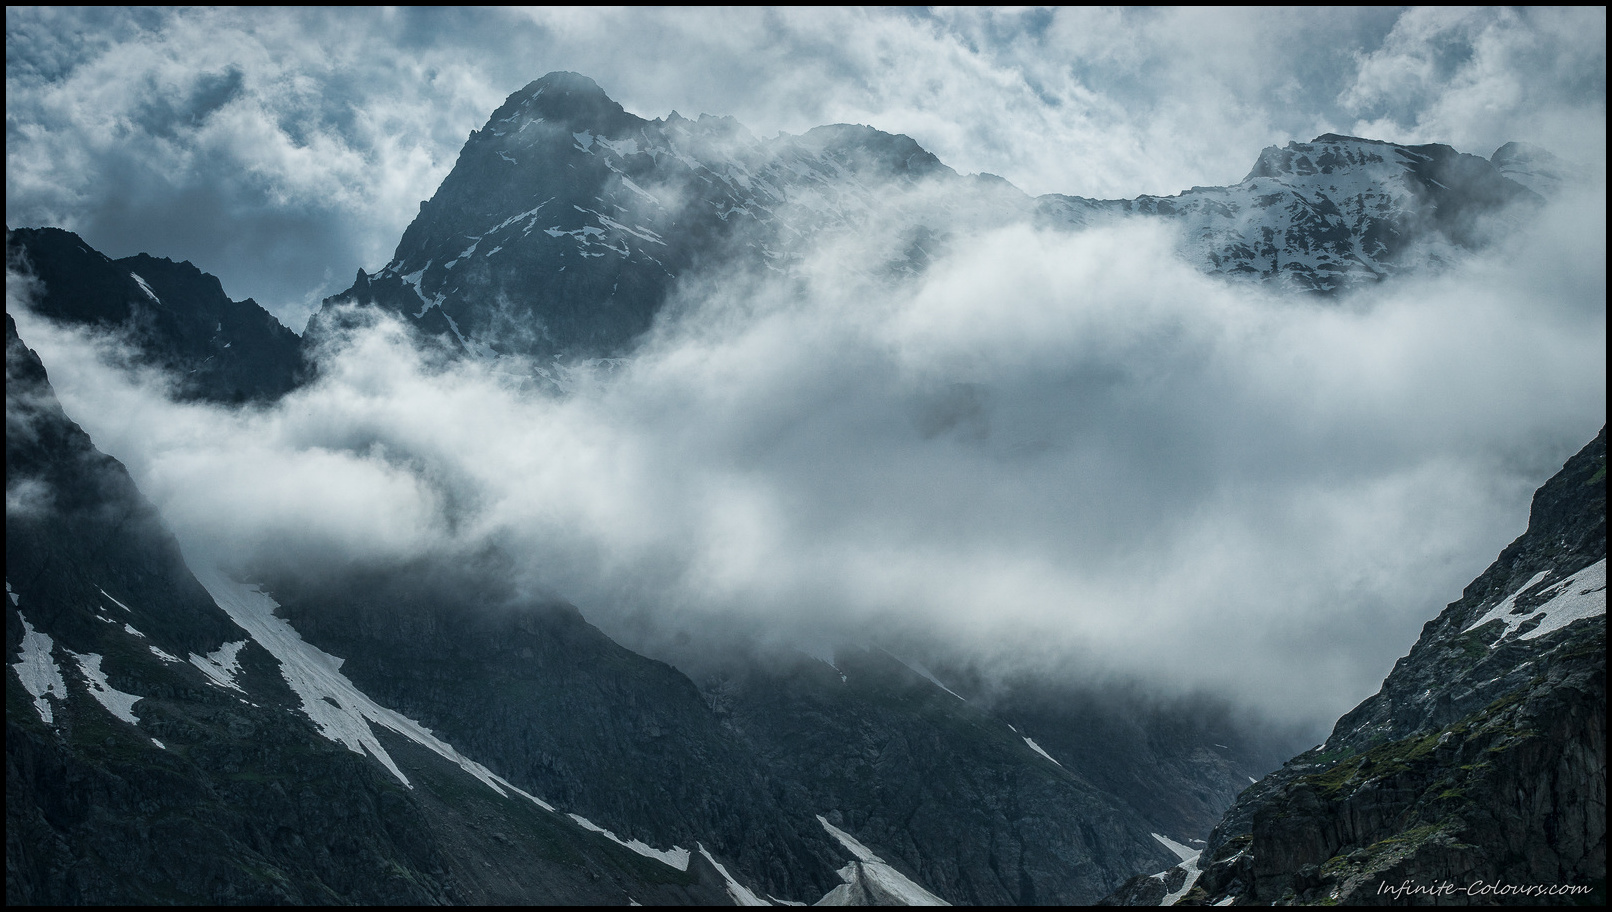 Clouds are cooking up over the Steingletscher